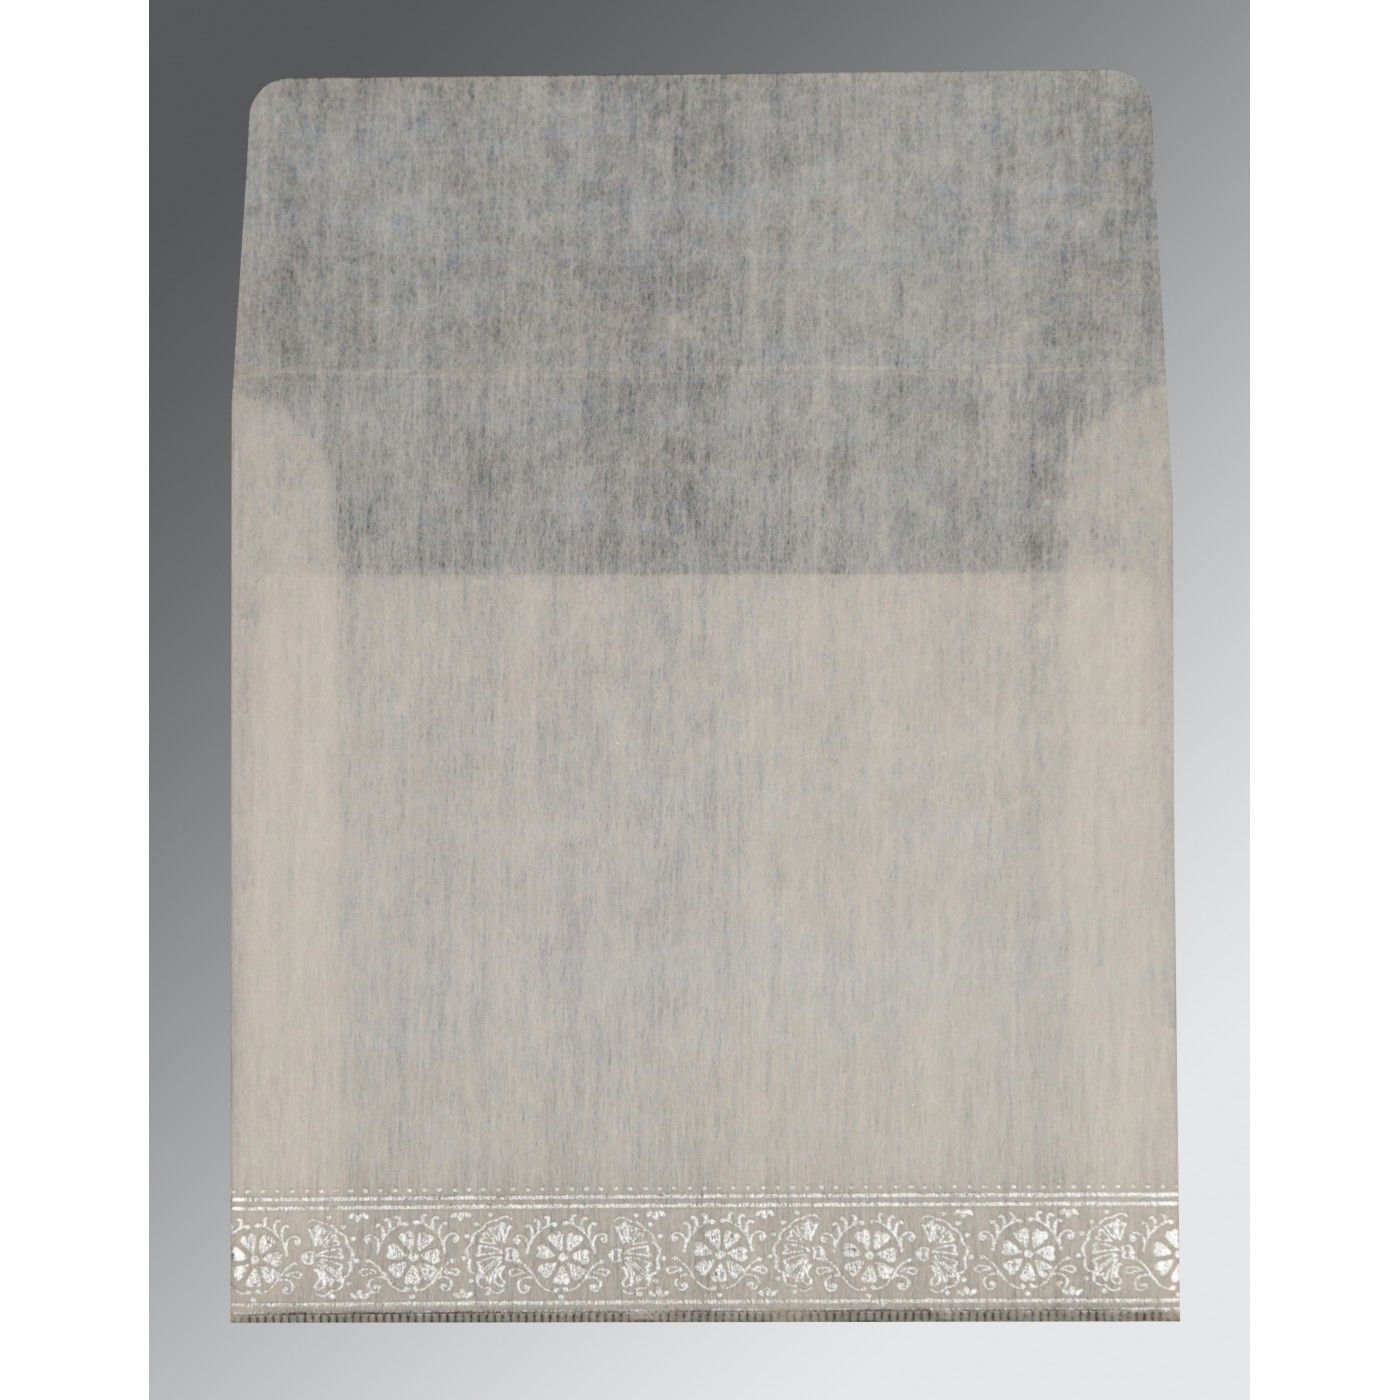 OFF-WHITE WOOLY FOIL STAMPED WEDDING CARD : CRU-8242P - IndianWeddingCards